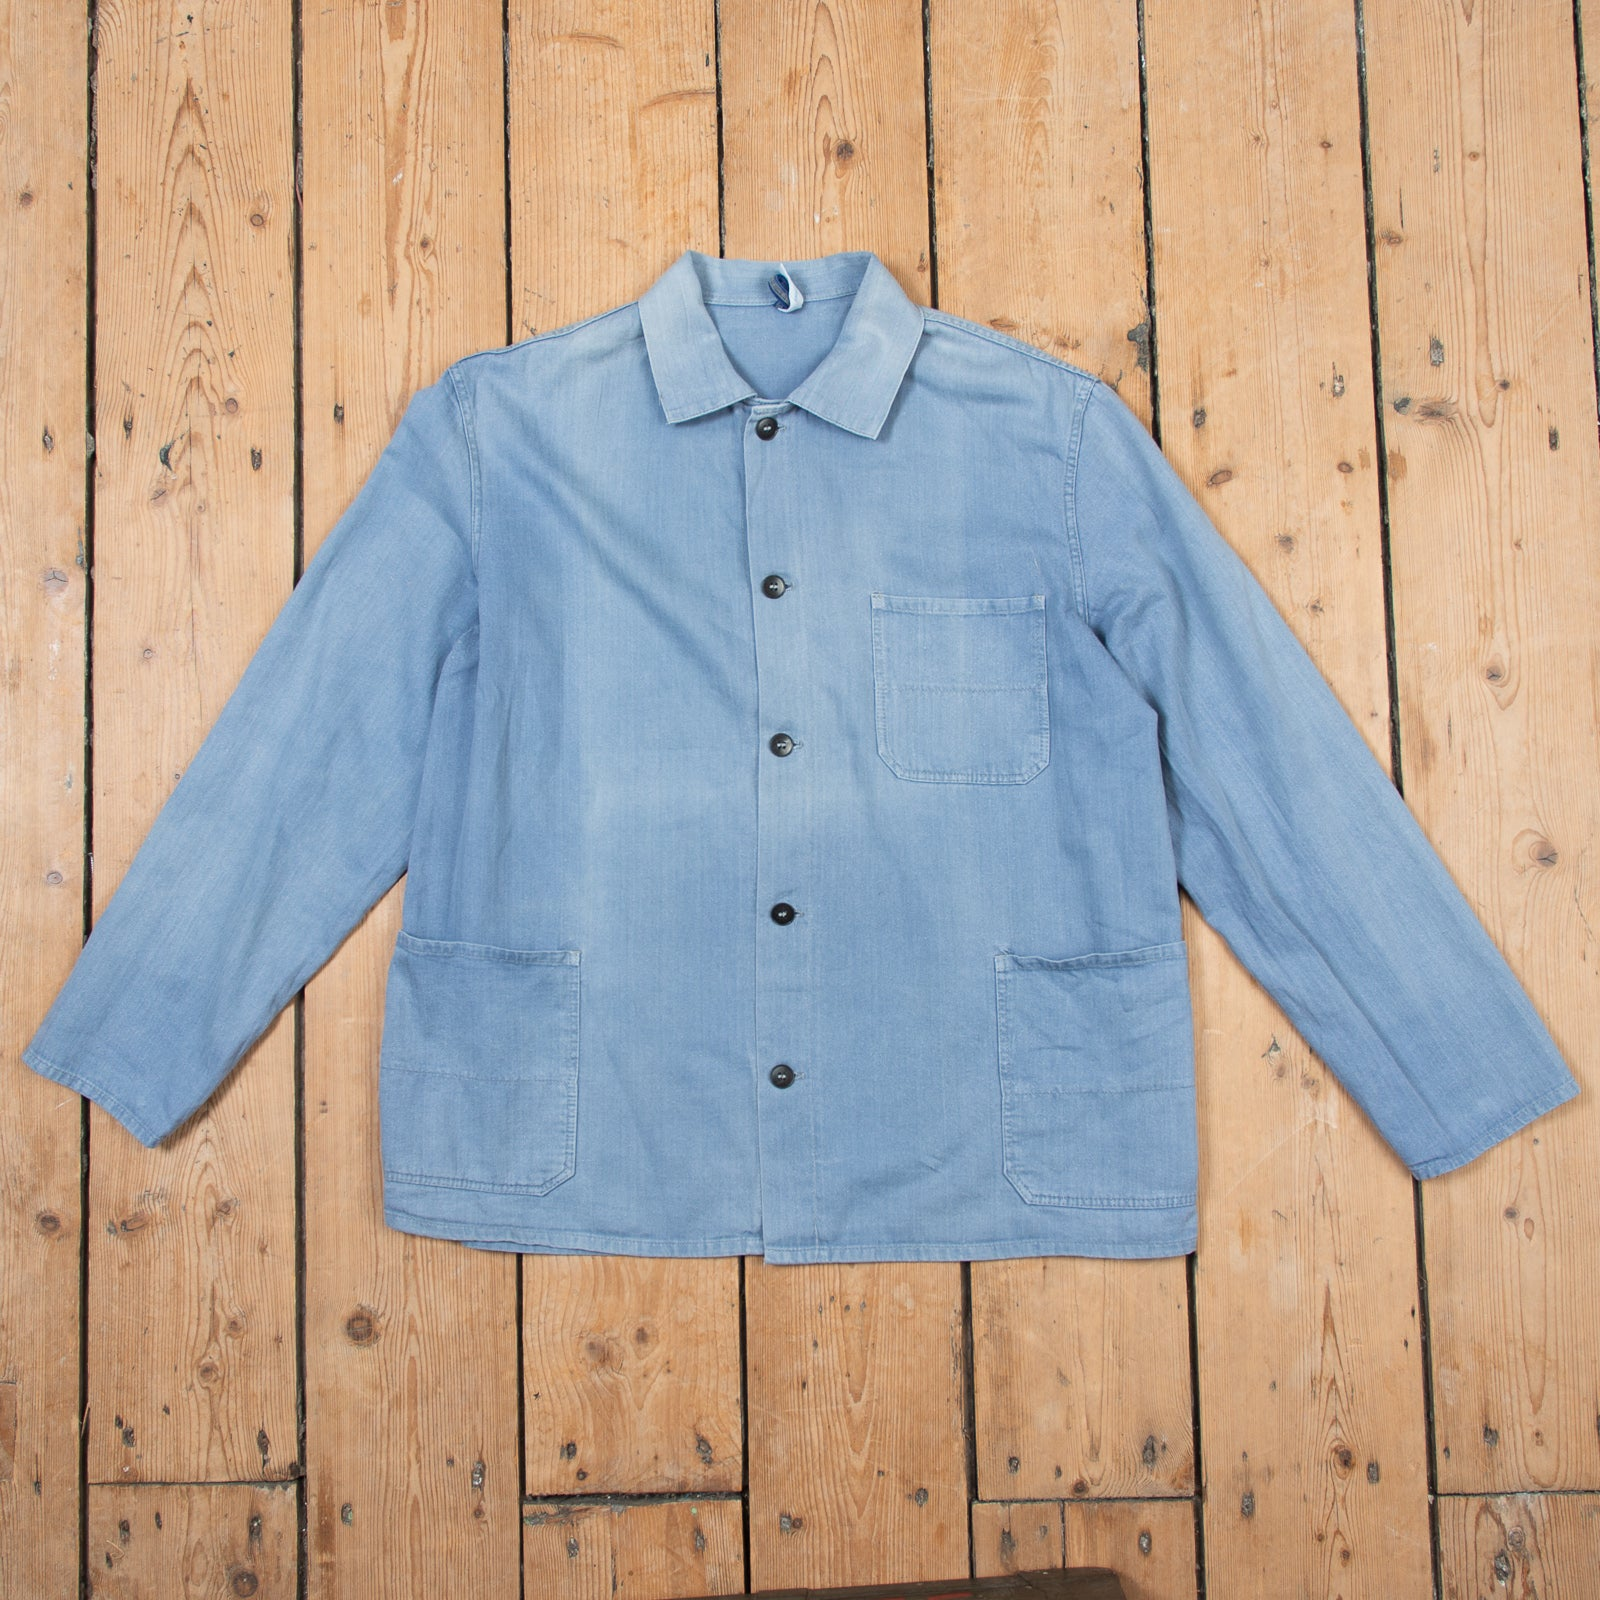 Faded Bleu Workers Jacket No. 3